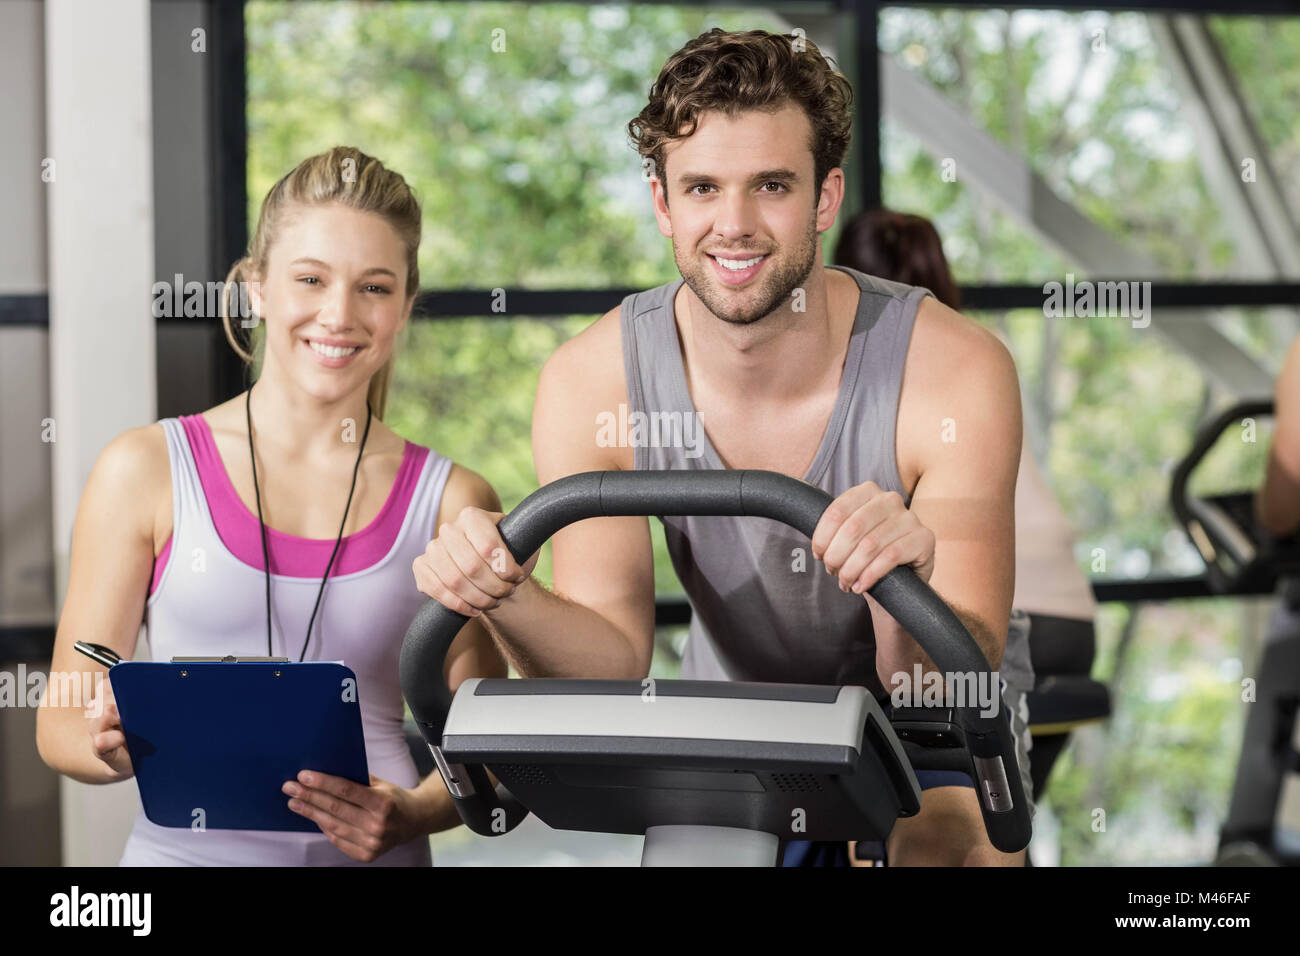 Trainer woman with a man doing exercise bike - Stock Image